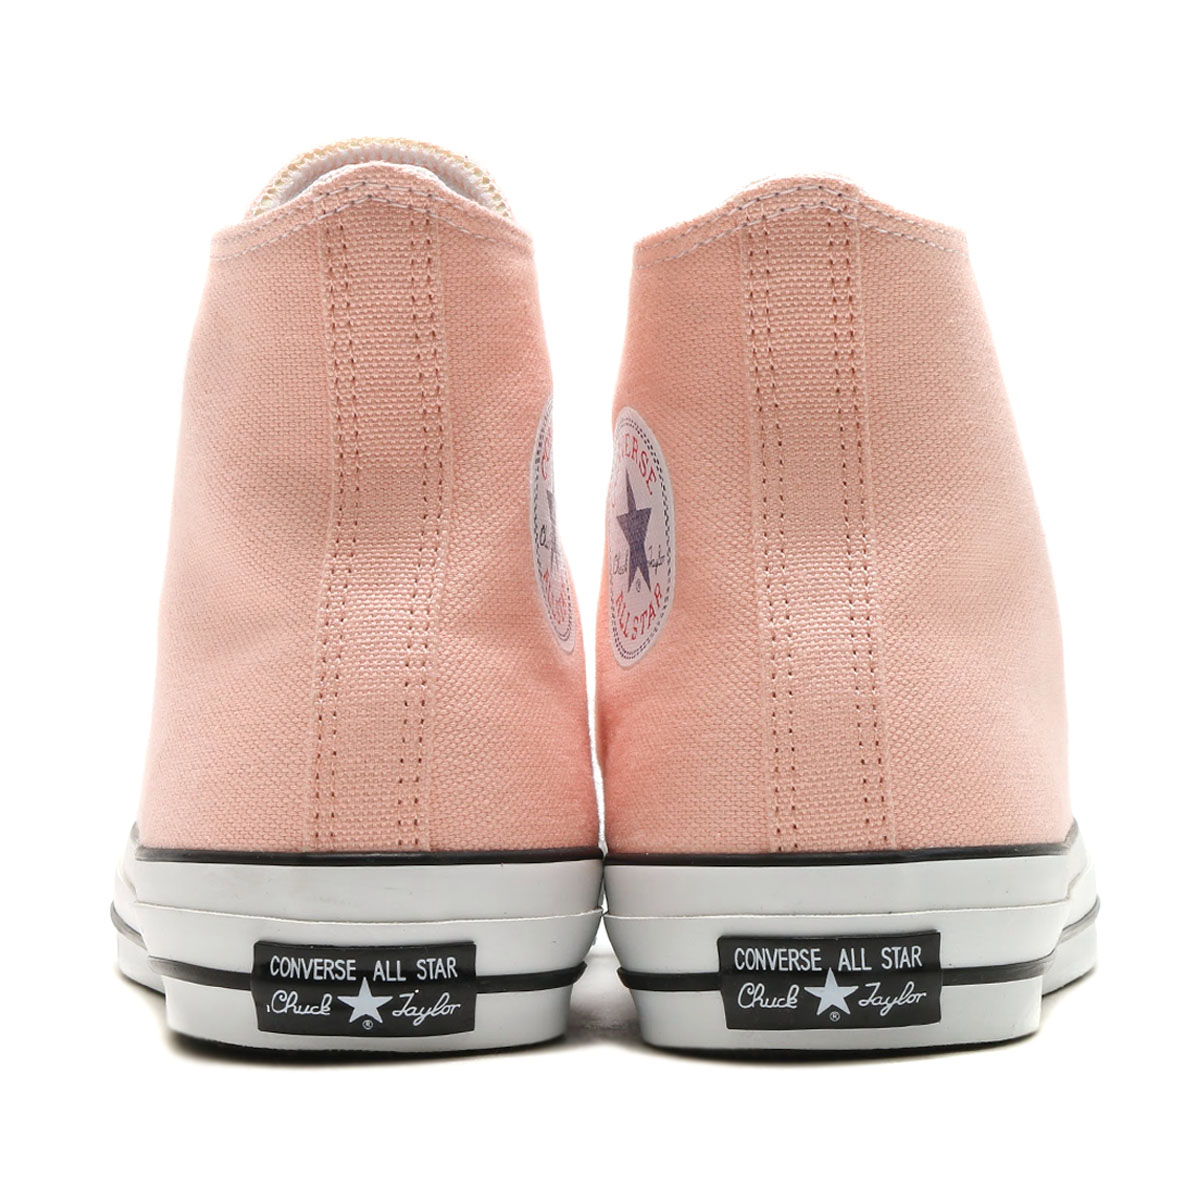 CONVERSE ALL STAR 100 COLORS HI (Converse all stars 100 colors high) (peach) 17SP I